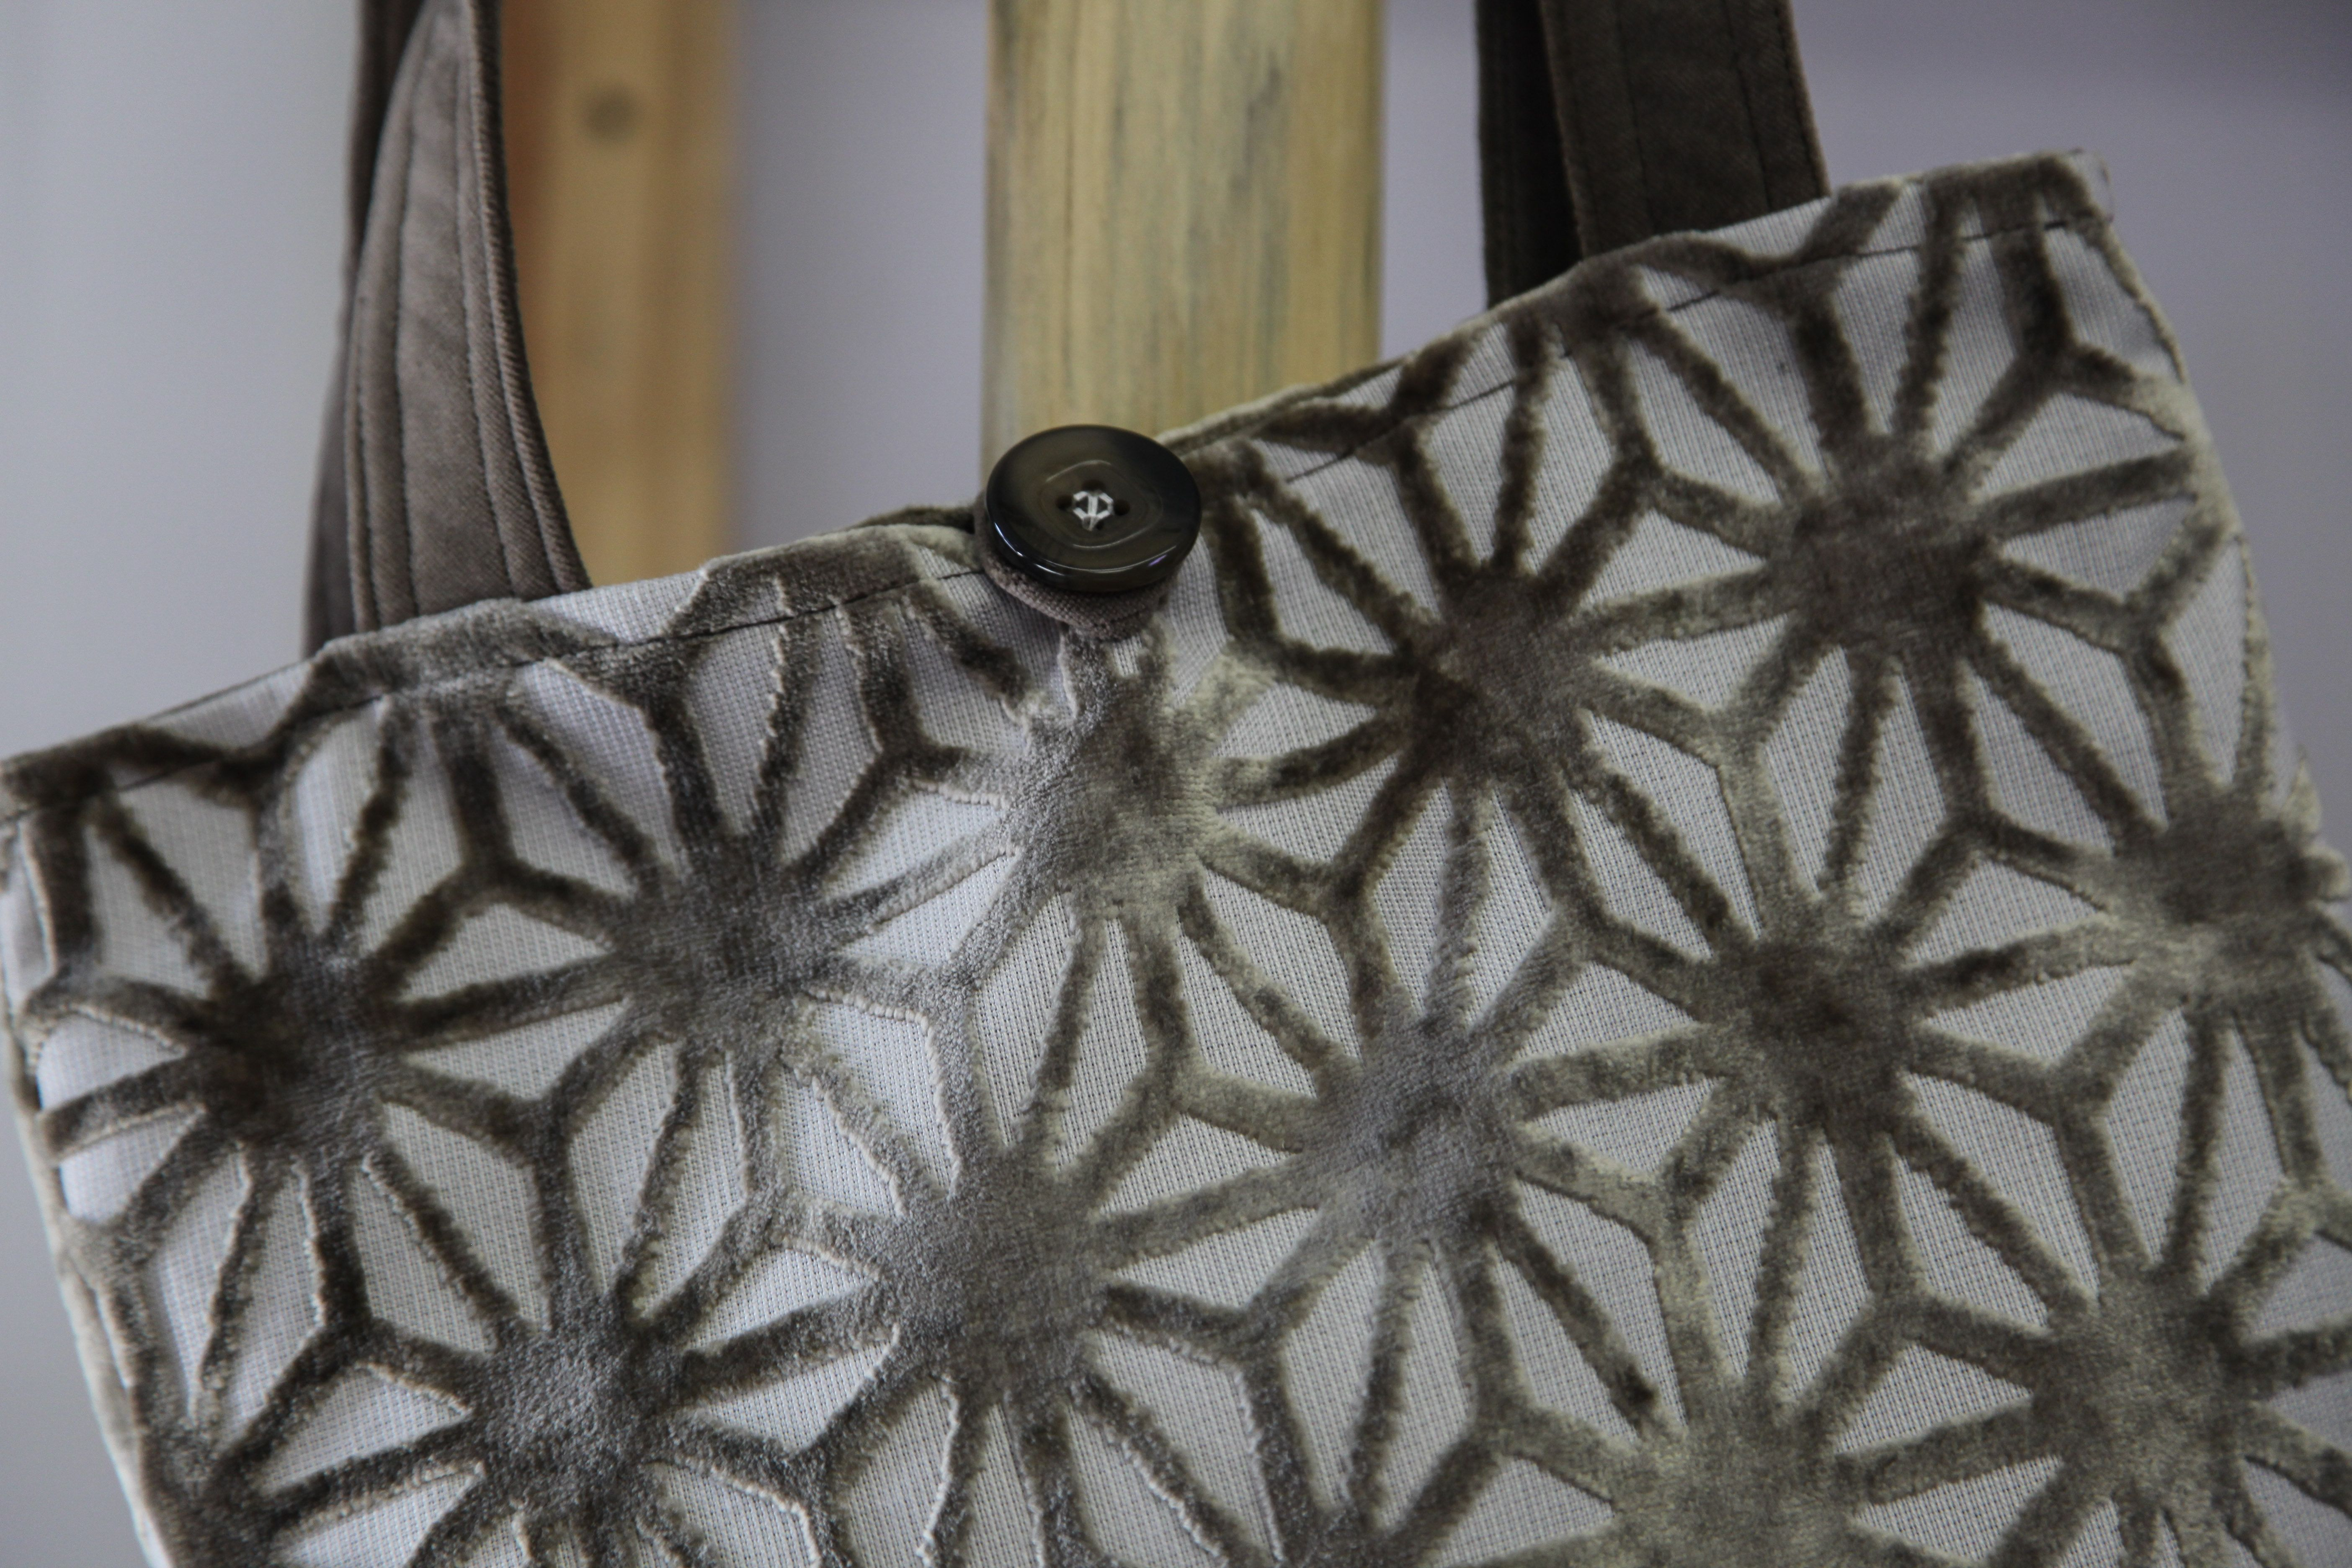 A closer look at the details of the flowers. Beautiful design makes this neutral bag stand out!